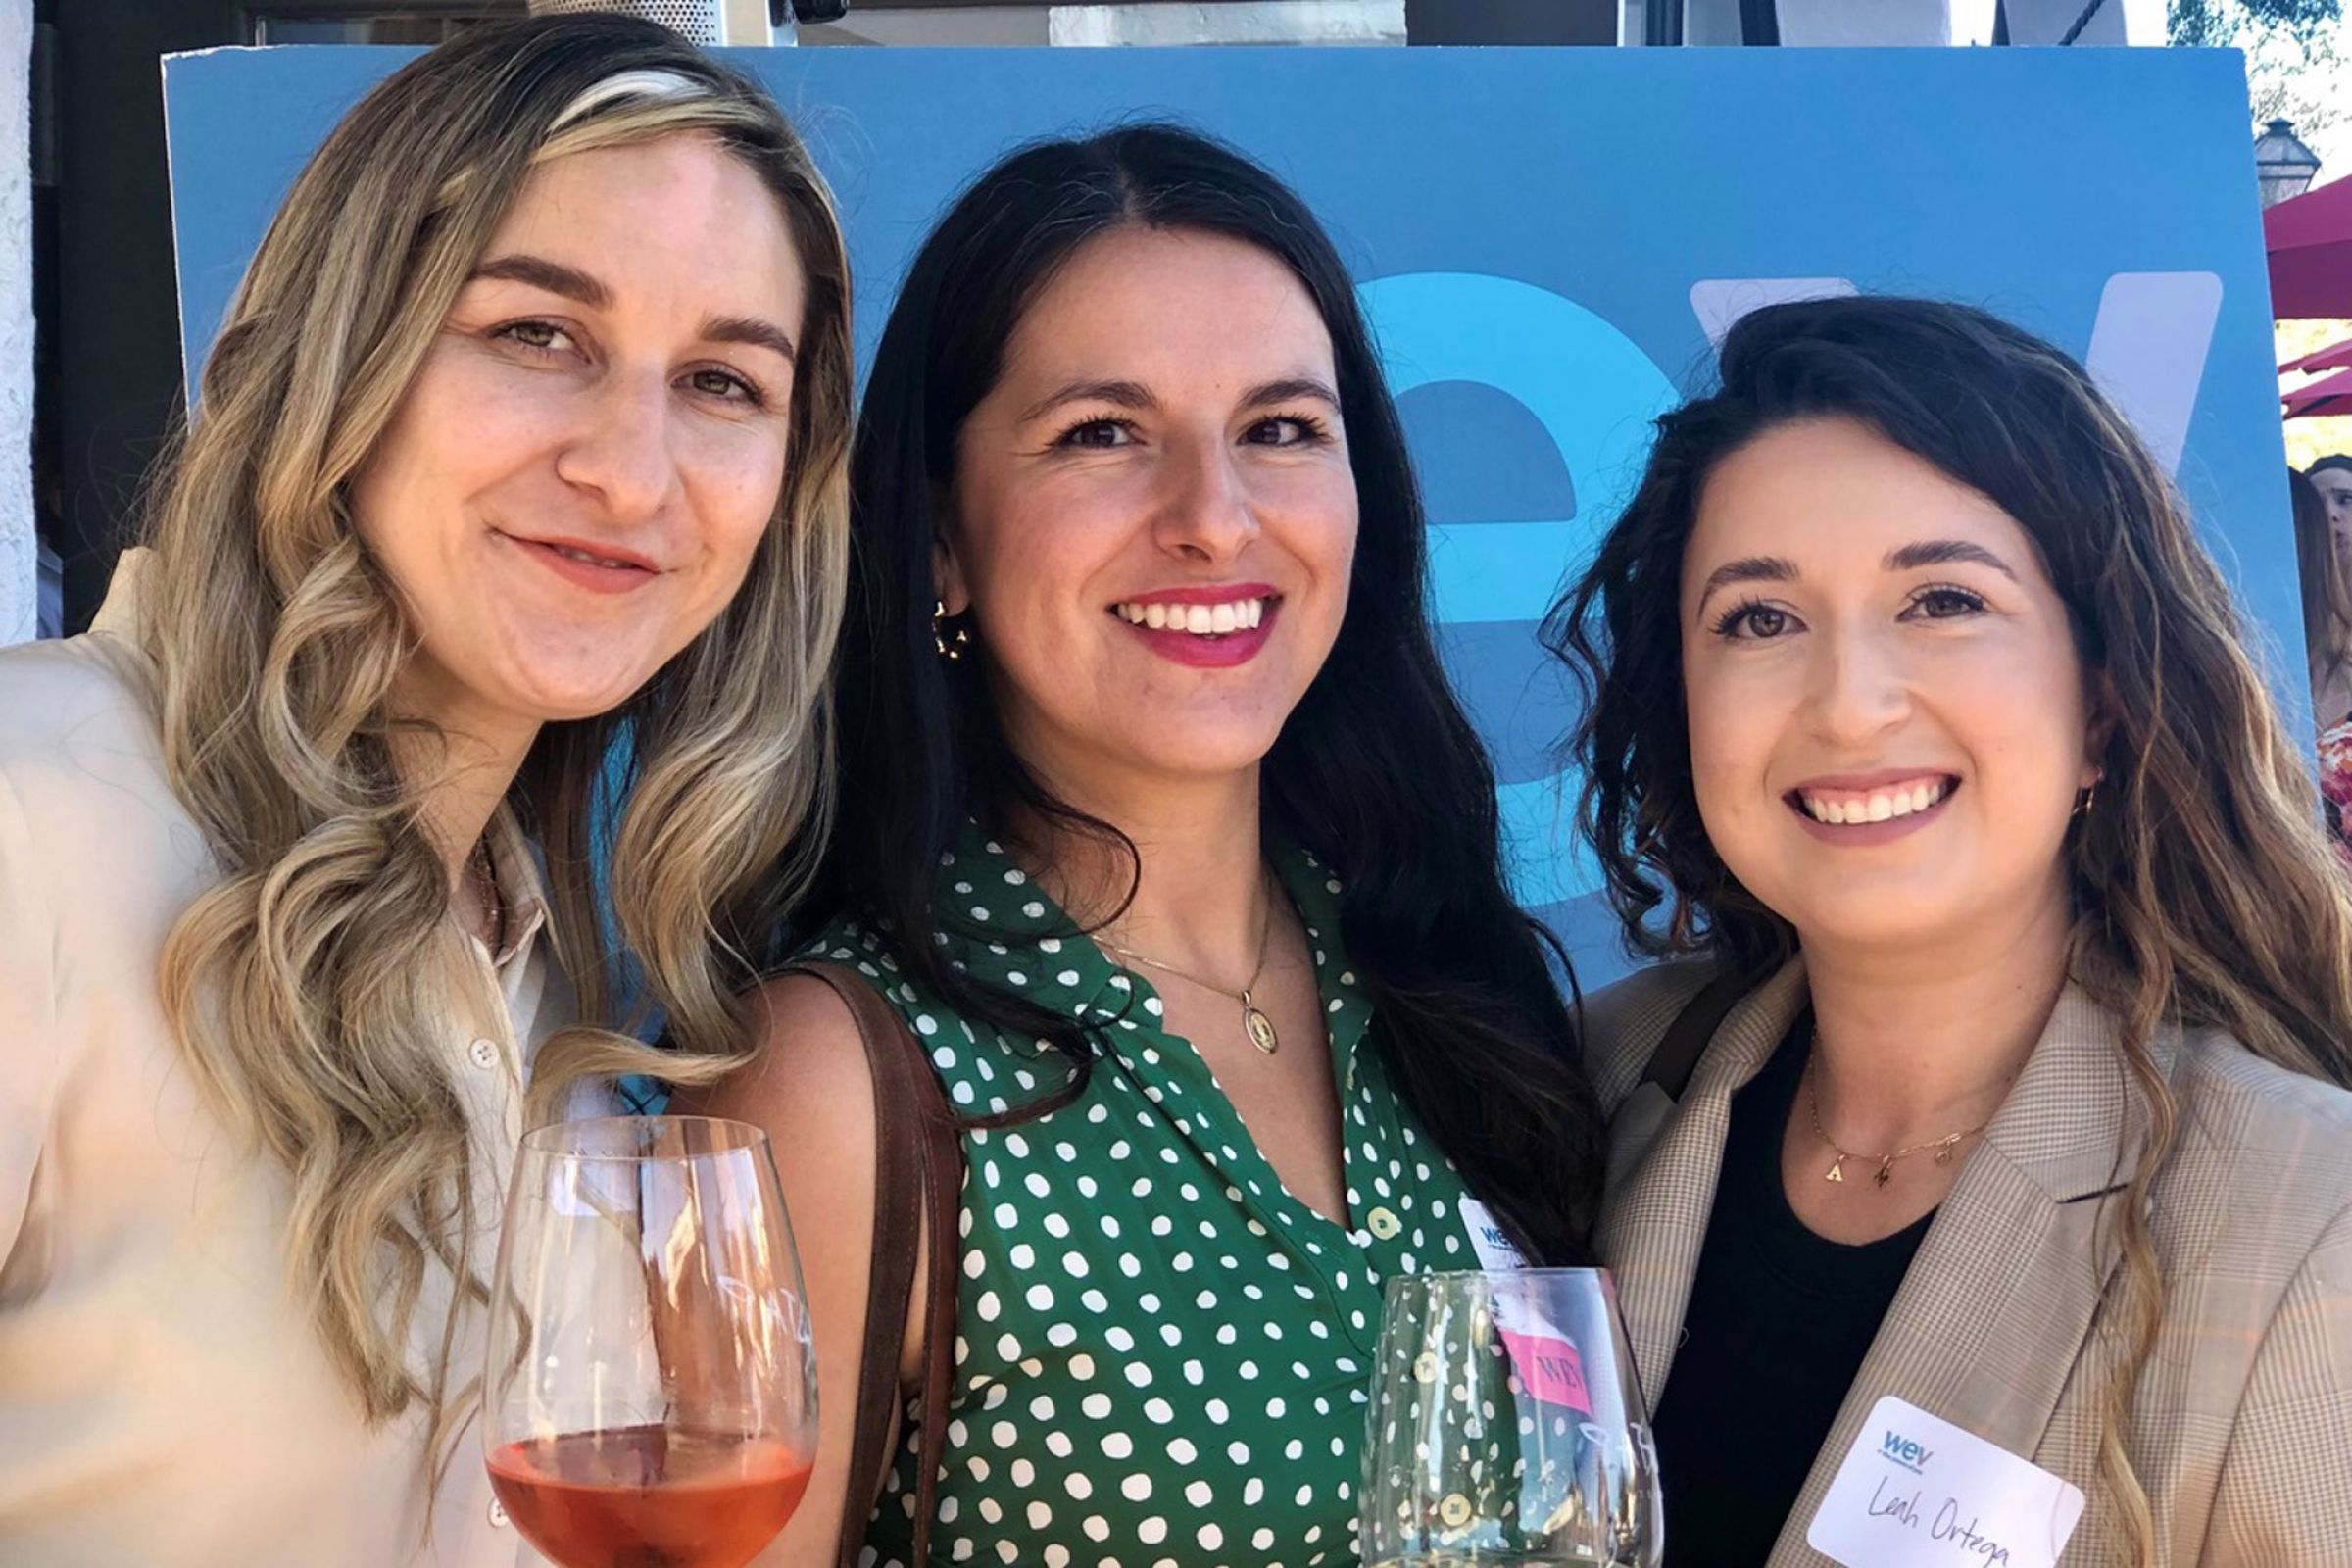 Elysia Guillen, left, Lili Munoz and Leah Ortega attend Tuesday's open house at Women's Economic Ventures' expanded space in the historic El Centro building in downtown Santa Barbara.